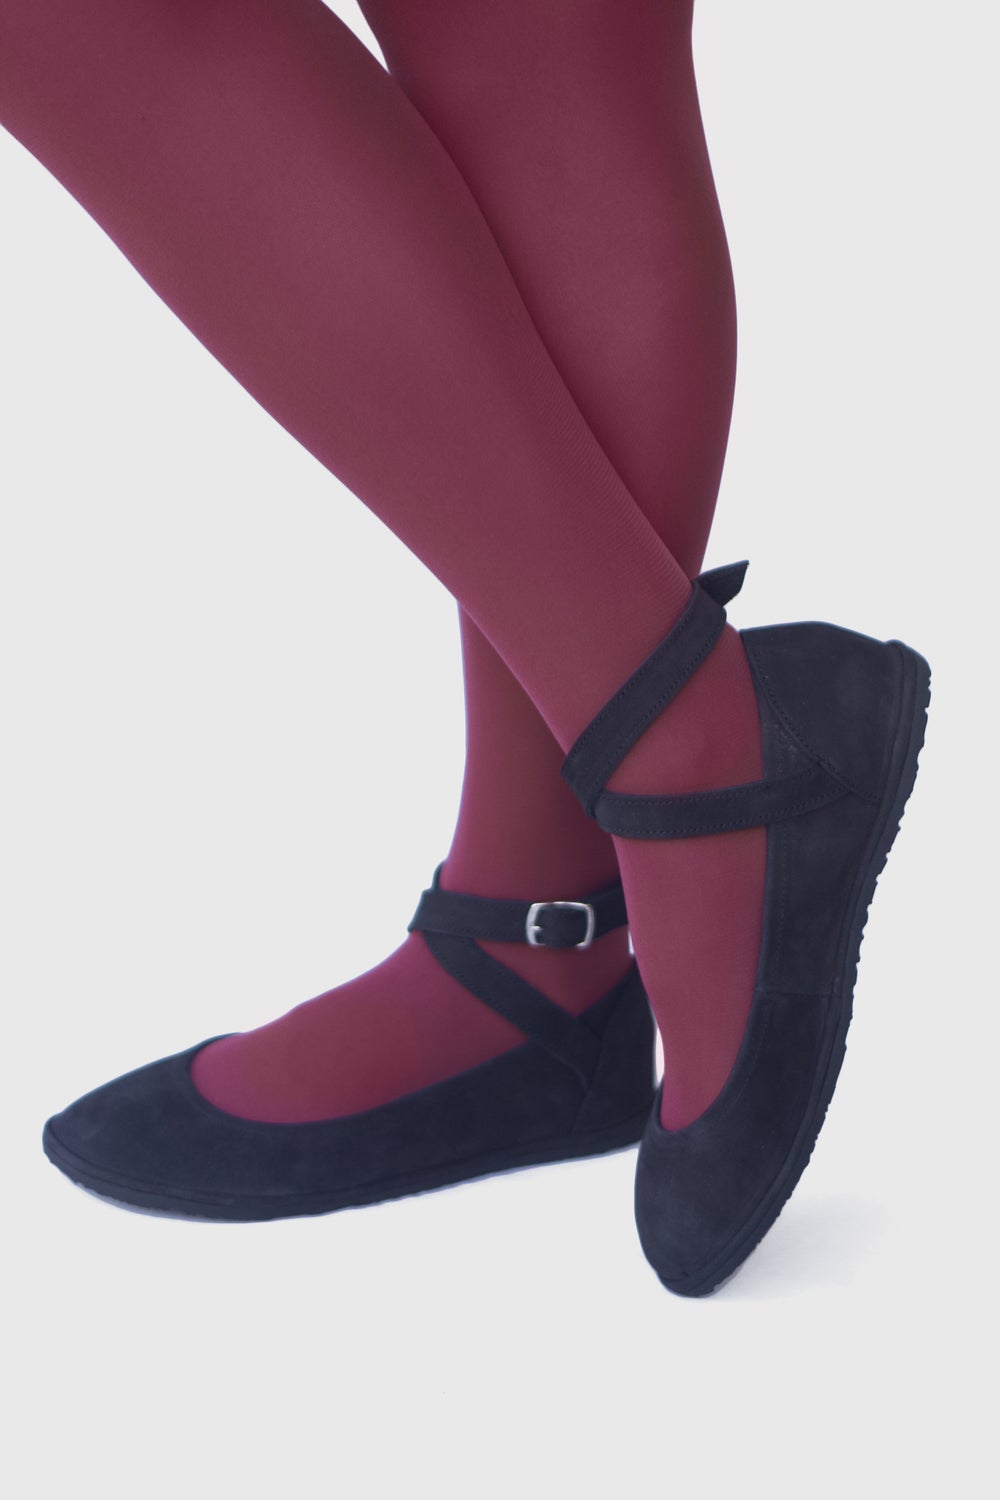 Image of Pax in Black Nubuck - Criss-Cross ankle strap flats